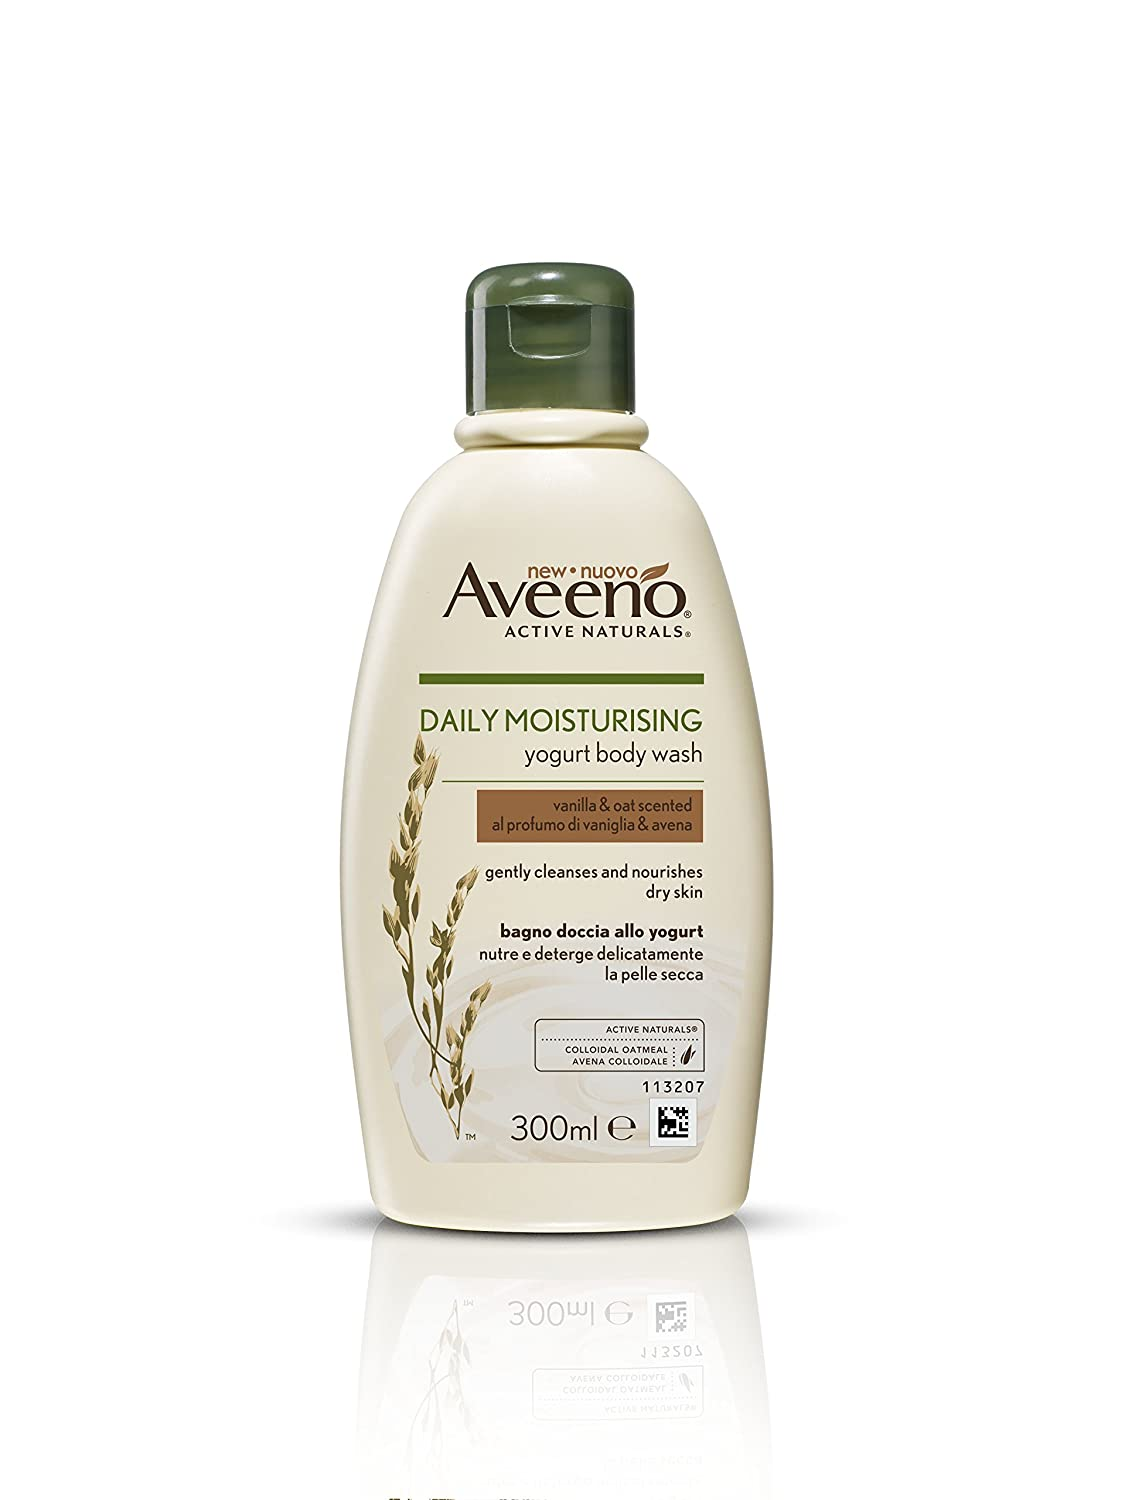 Aveeno Daily Moisturising Yogurt Body Wash, 300 ml, Vanilla and Oat Scented Johnson & Johnson 8954700